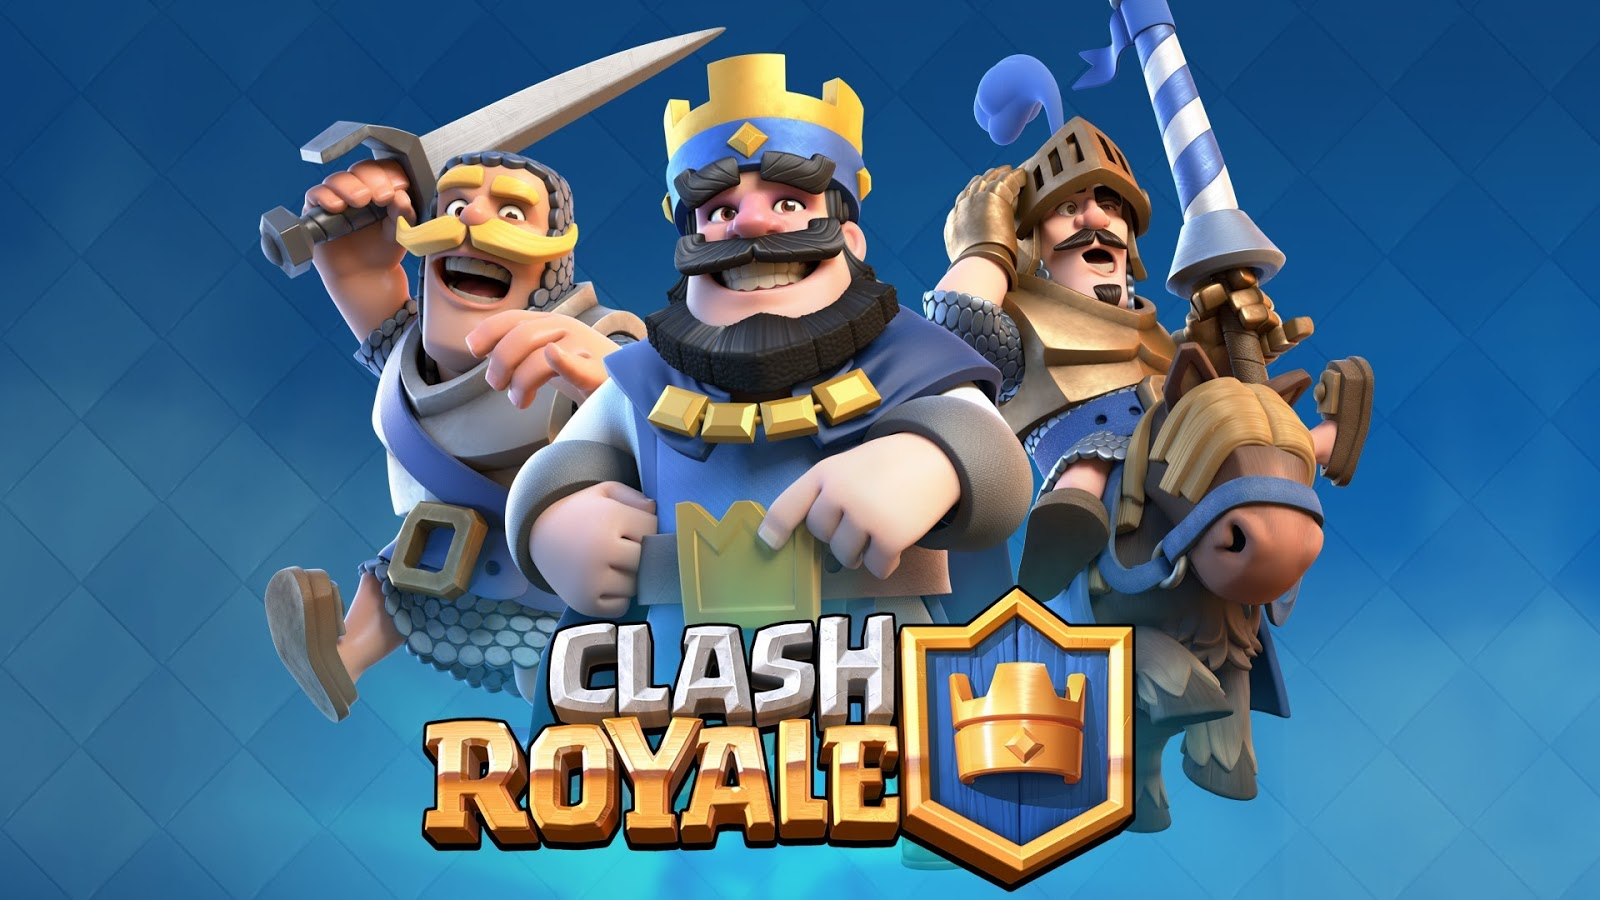 Clash Royale, SuperCell